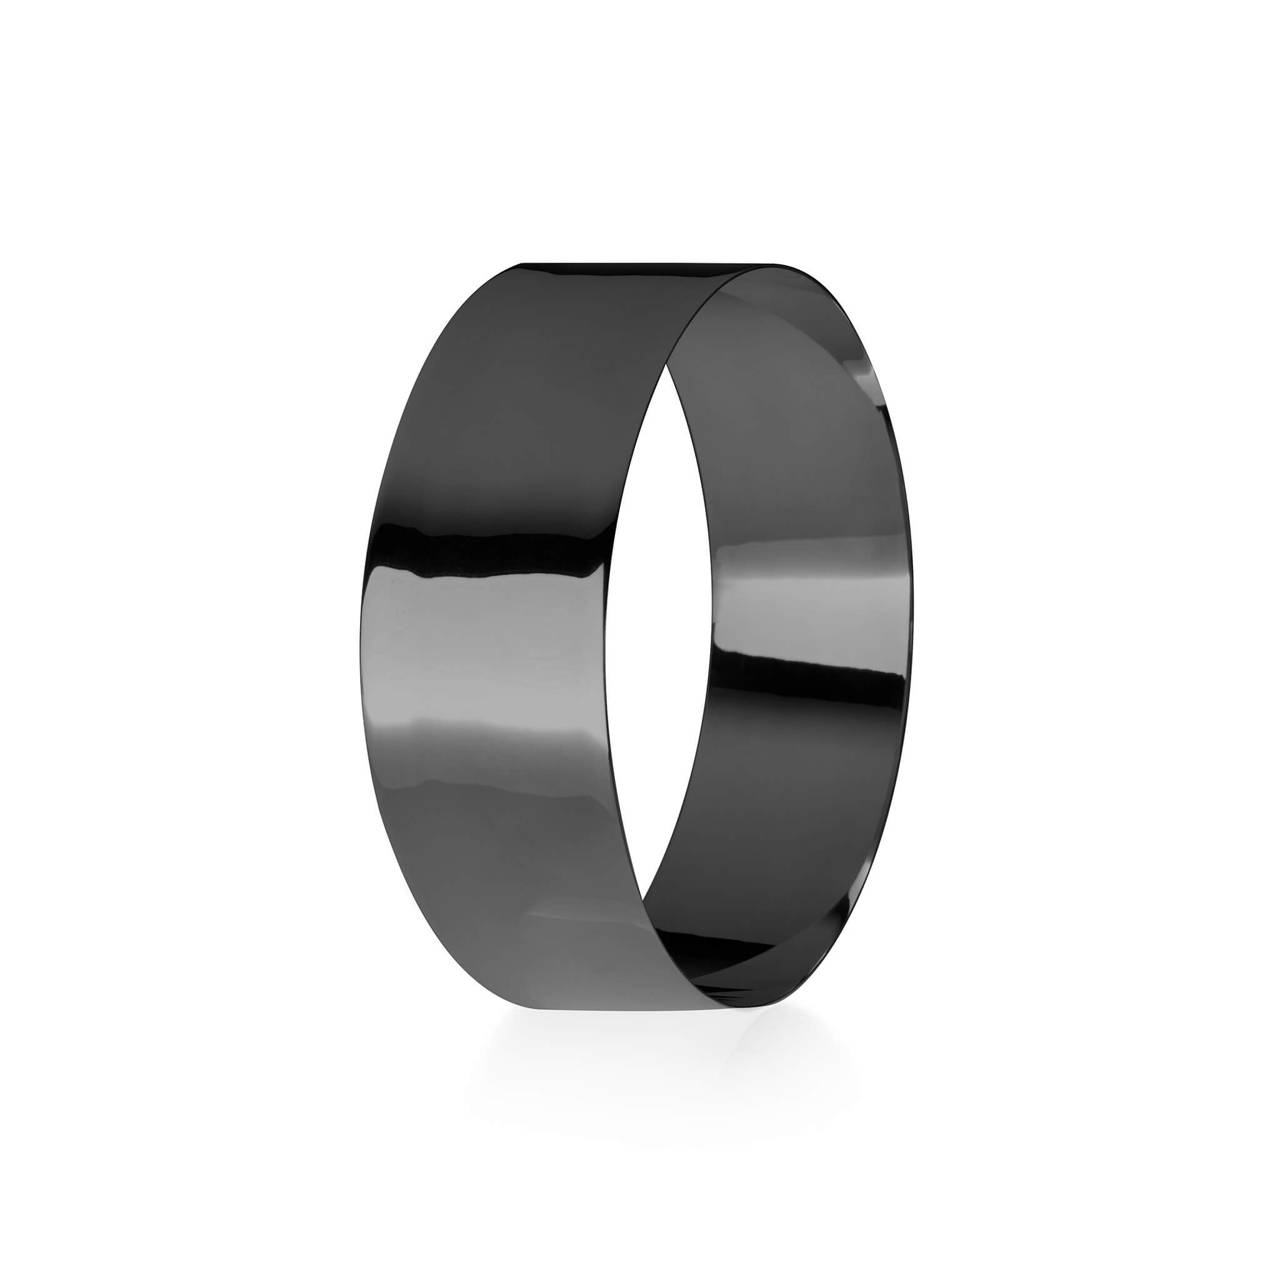 Band in Black Nickel